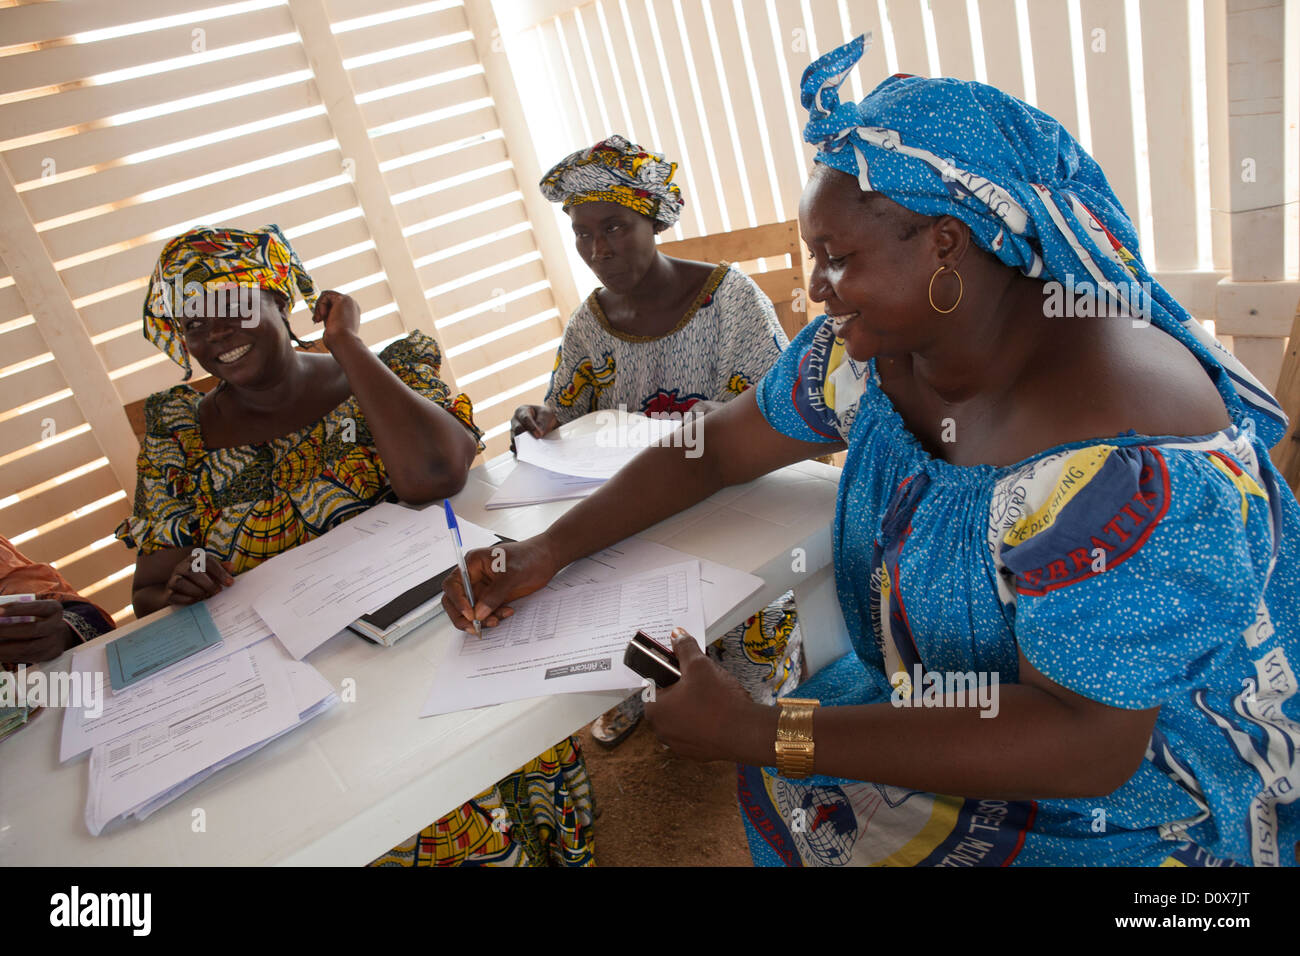 A woman signs for a microfinance loan in Doba, Chad, Africa. - Stock Image